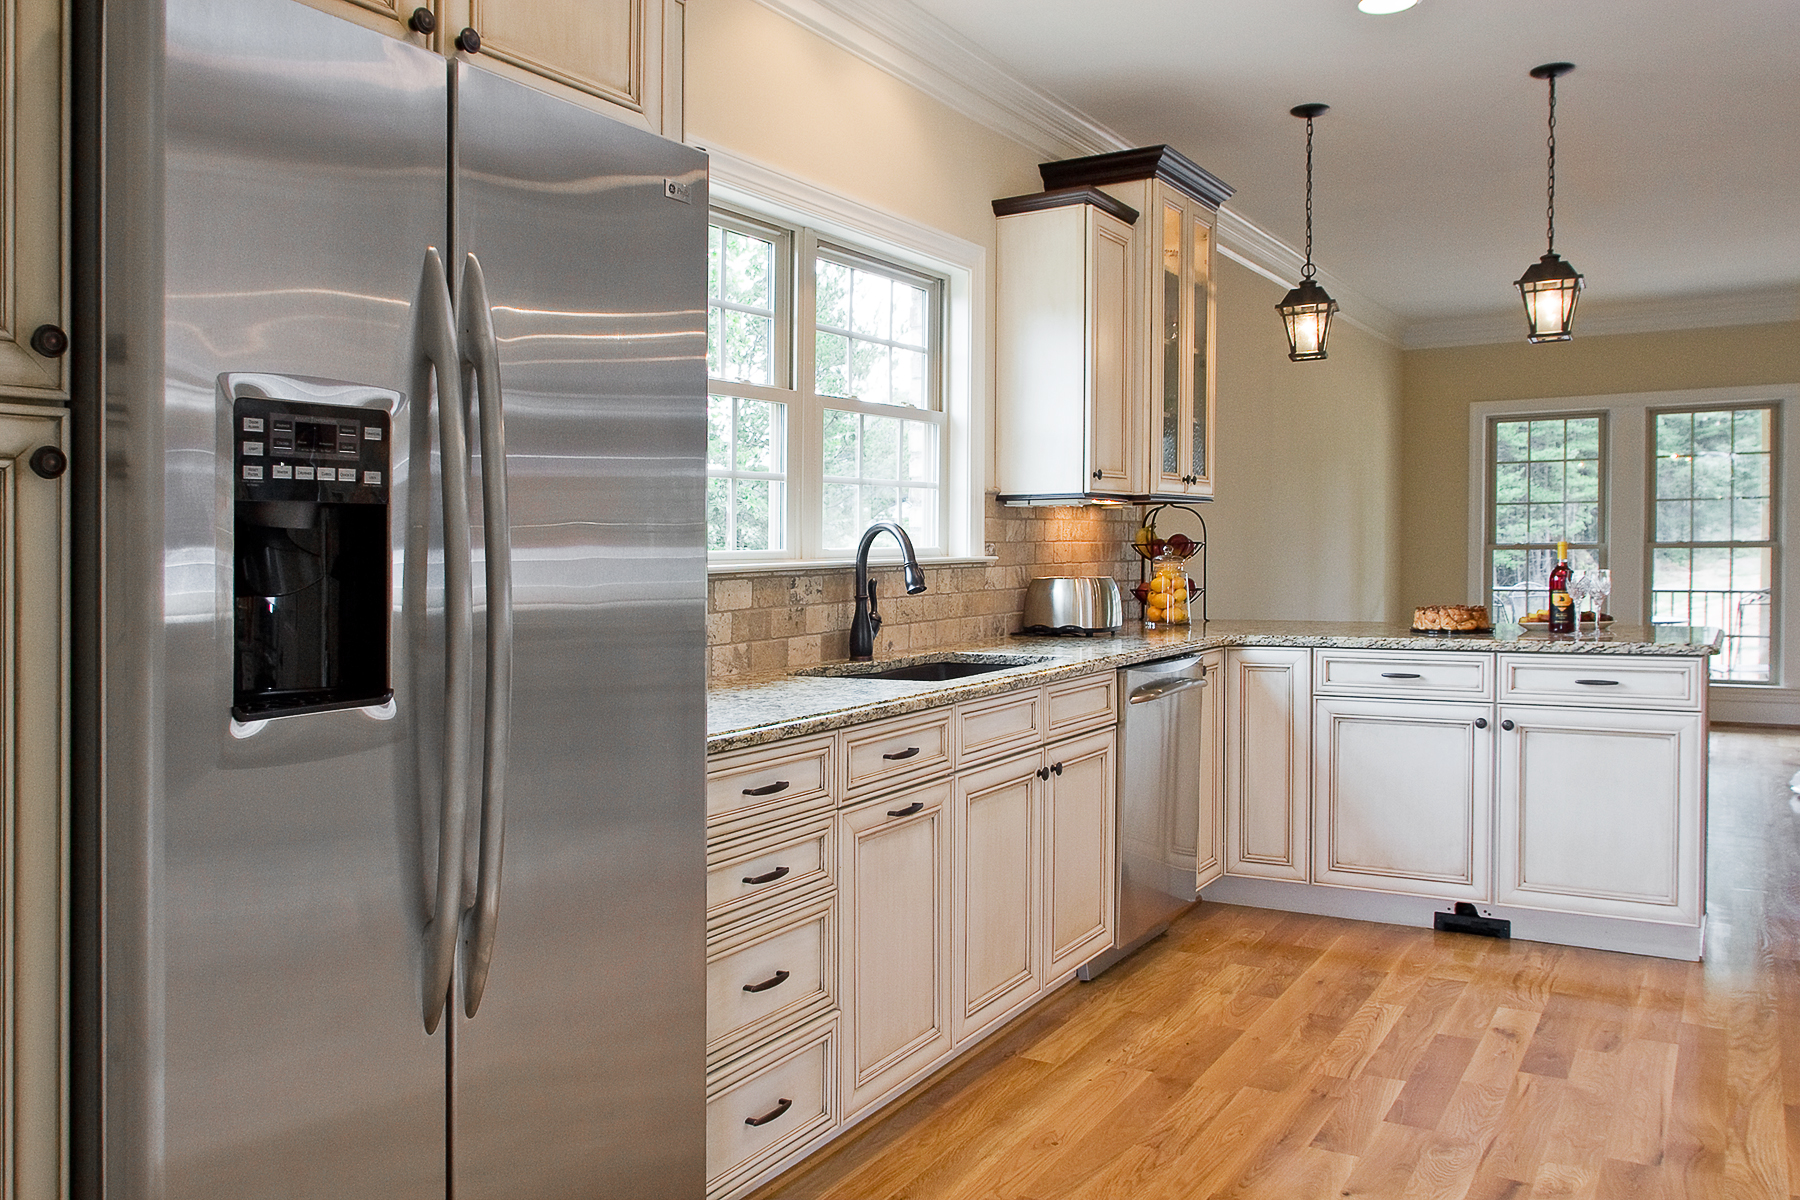 Kitchen Design Ideas White pictures of white kitchen cabinets with white appliances best 25+